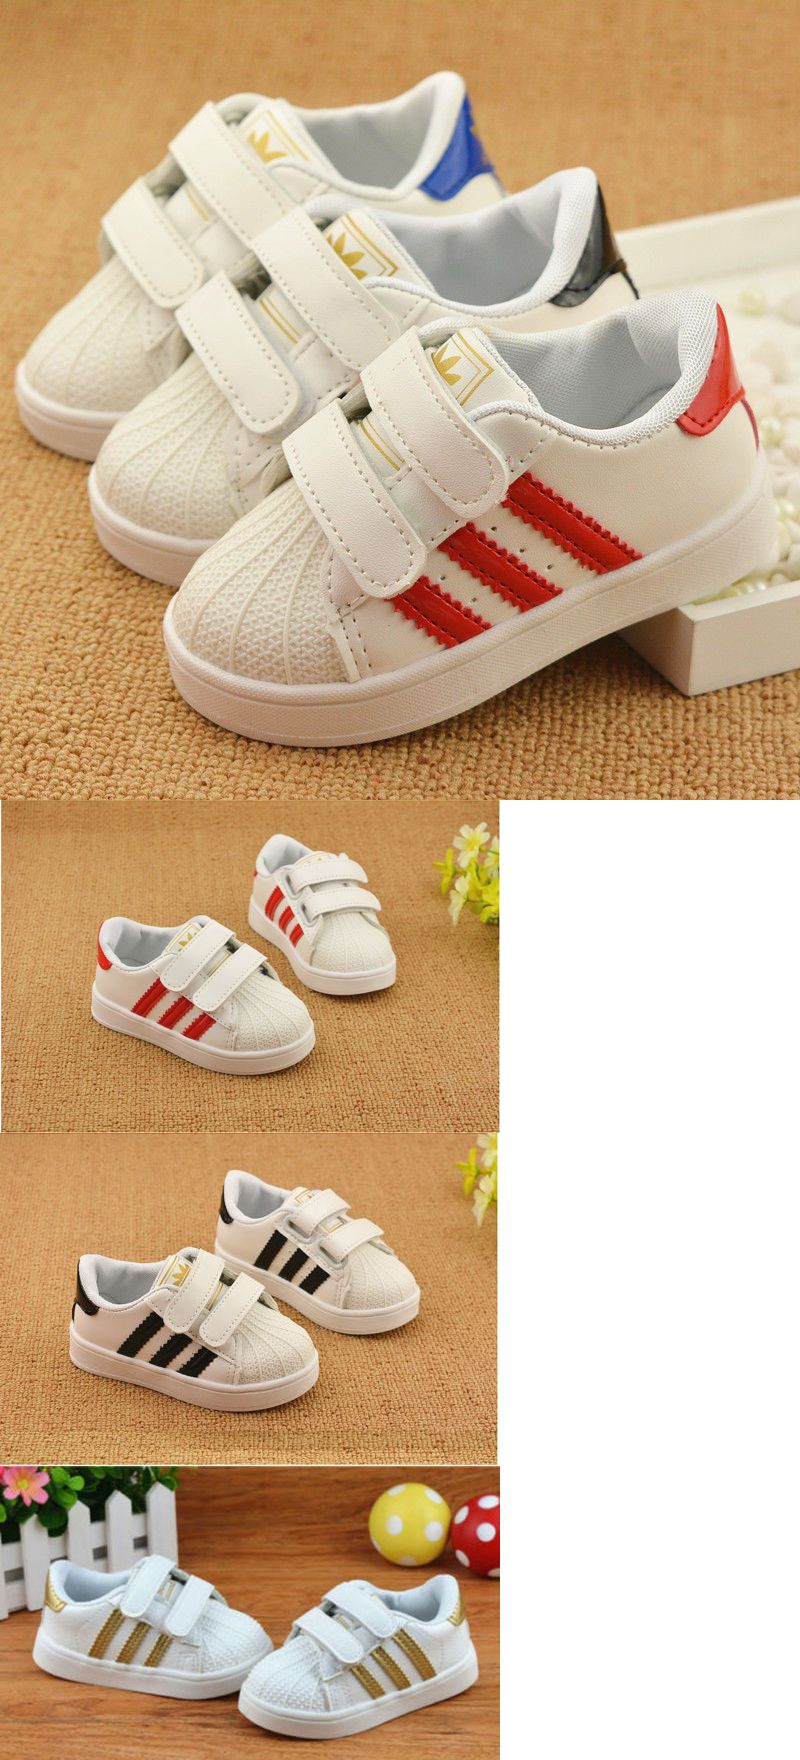 Baby Boy Shoes  Boys Girls Child Sports Sneaker Shoe Baby Toddler Kid  Casual Shoes Us 637df160c